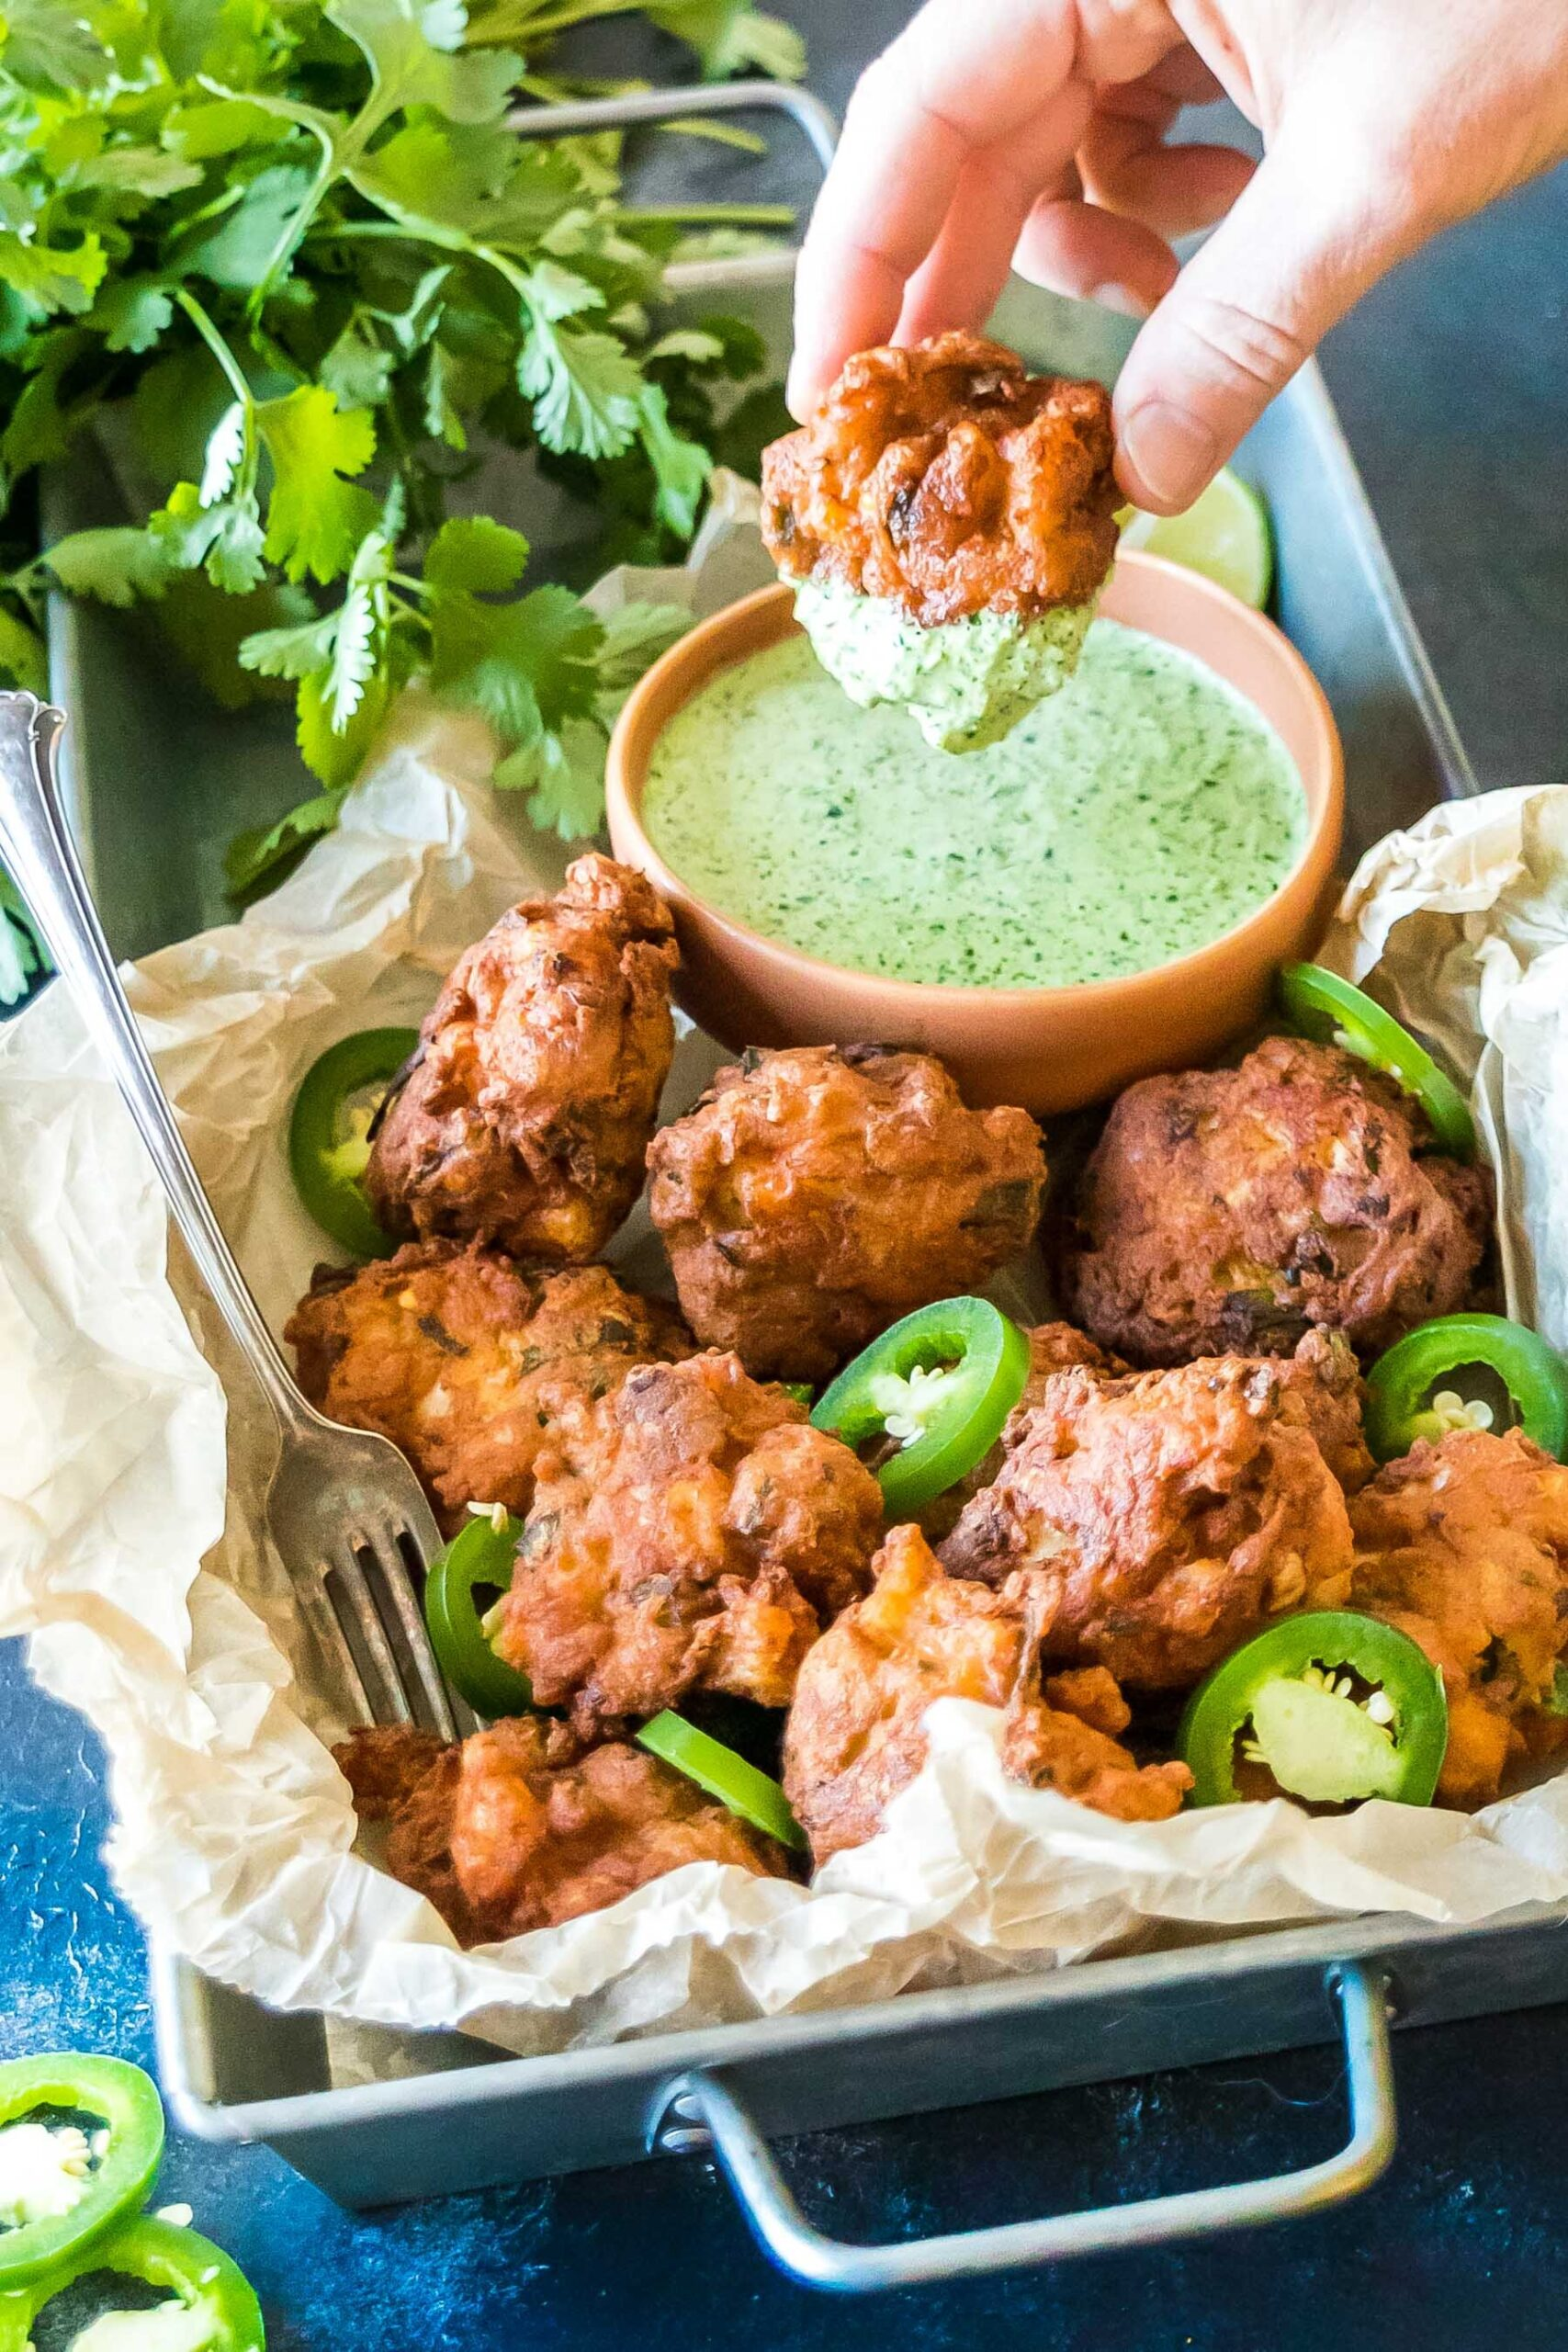 Keto Jalapeño Shrimp Hushpuppies on a tray, one hushpuppy is being dipped into the jalapeno sauce